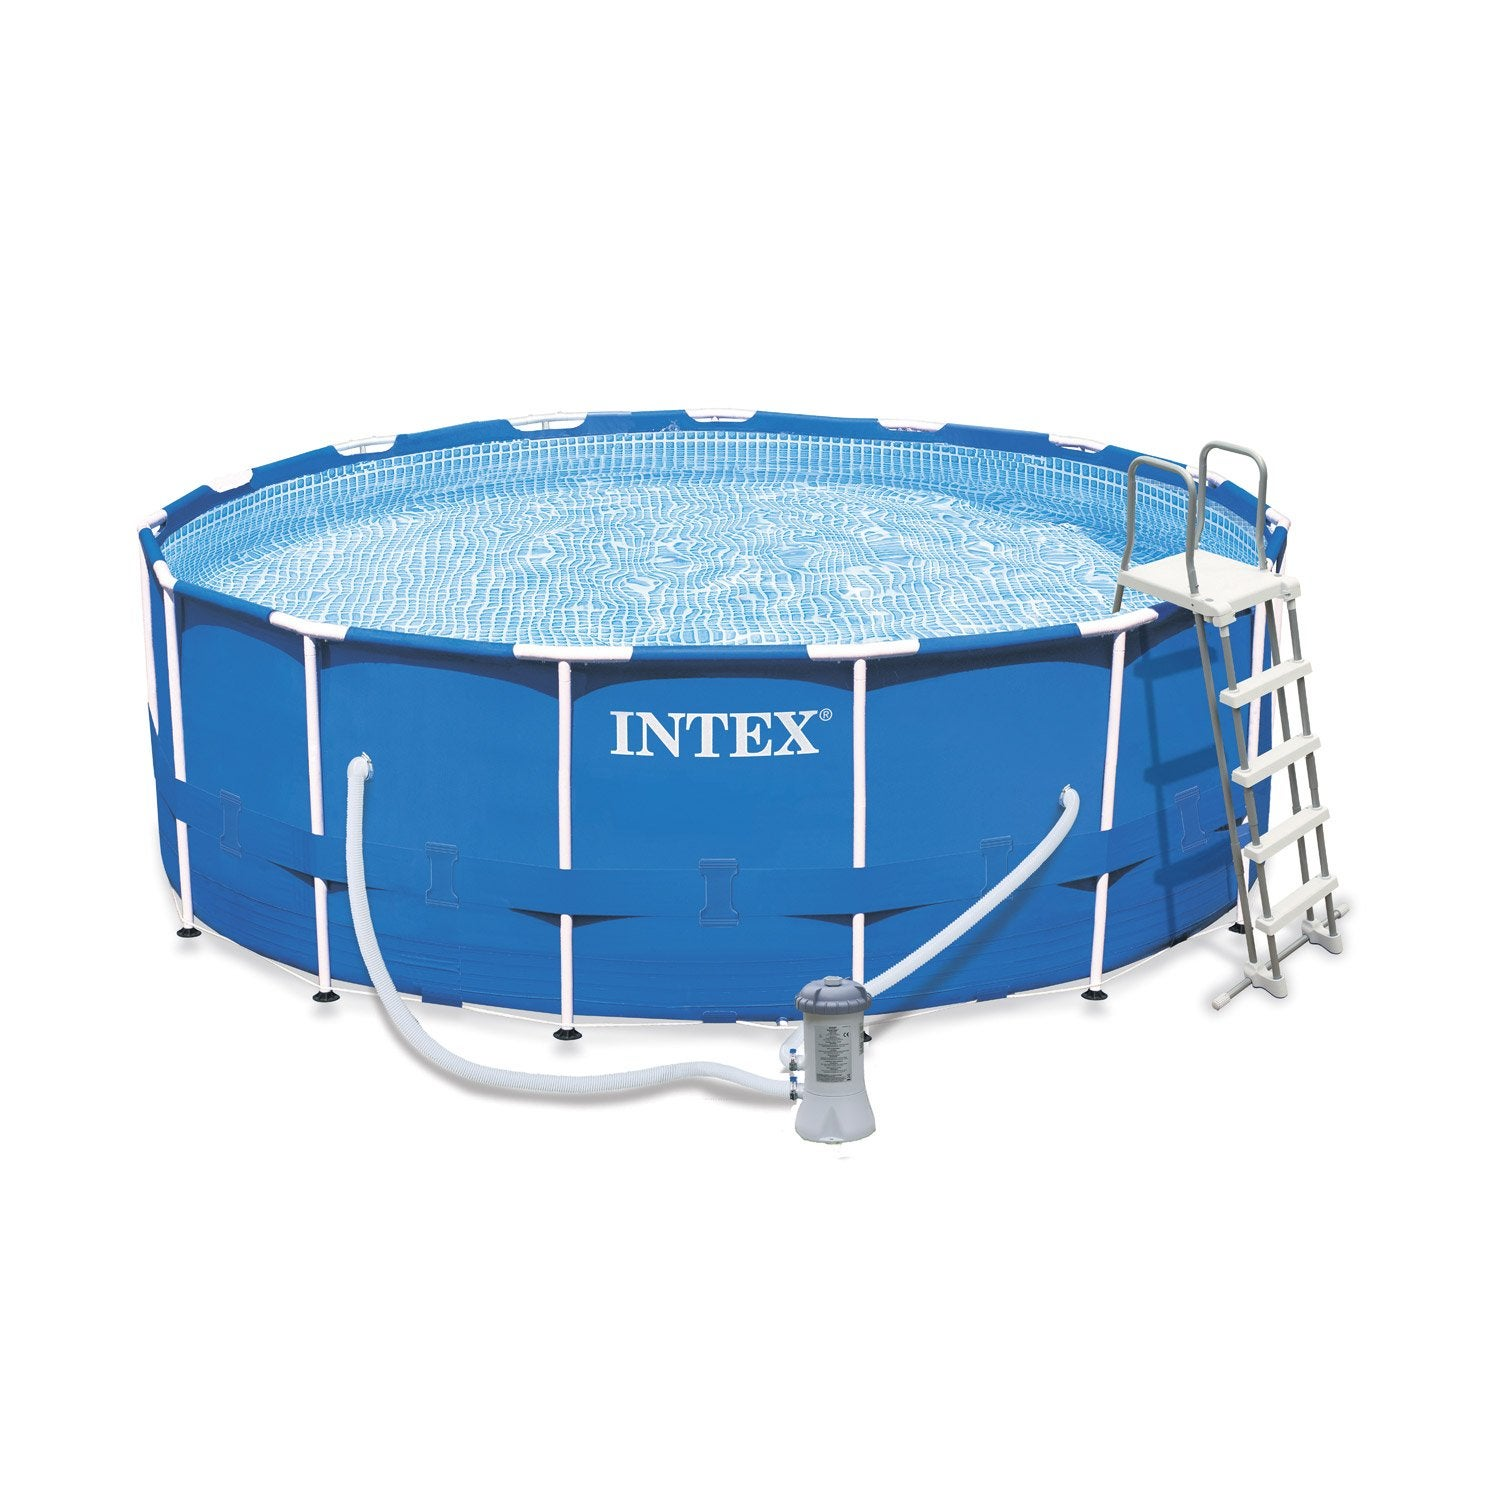 Piscine hors sol autoportante tubulaire metal frame intex for Piscine hors sol metal resine